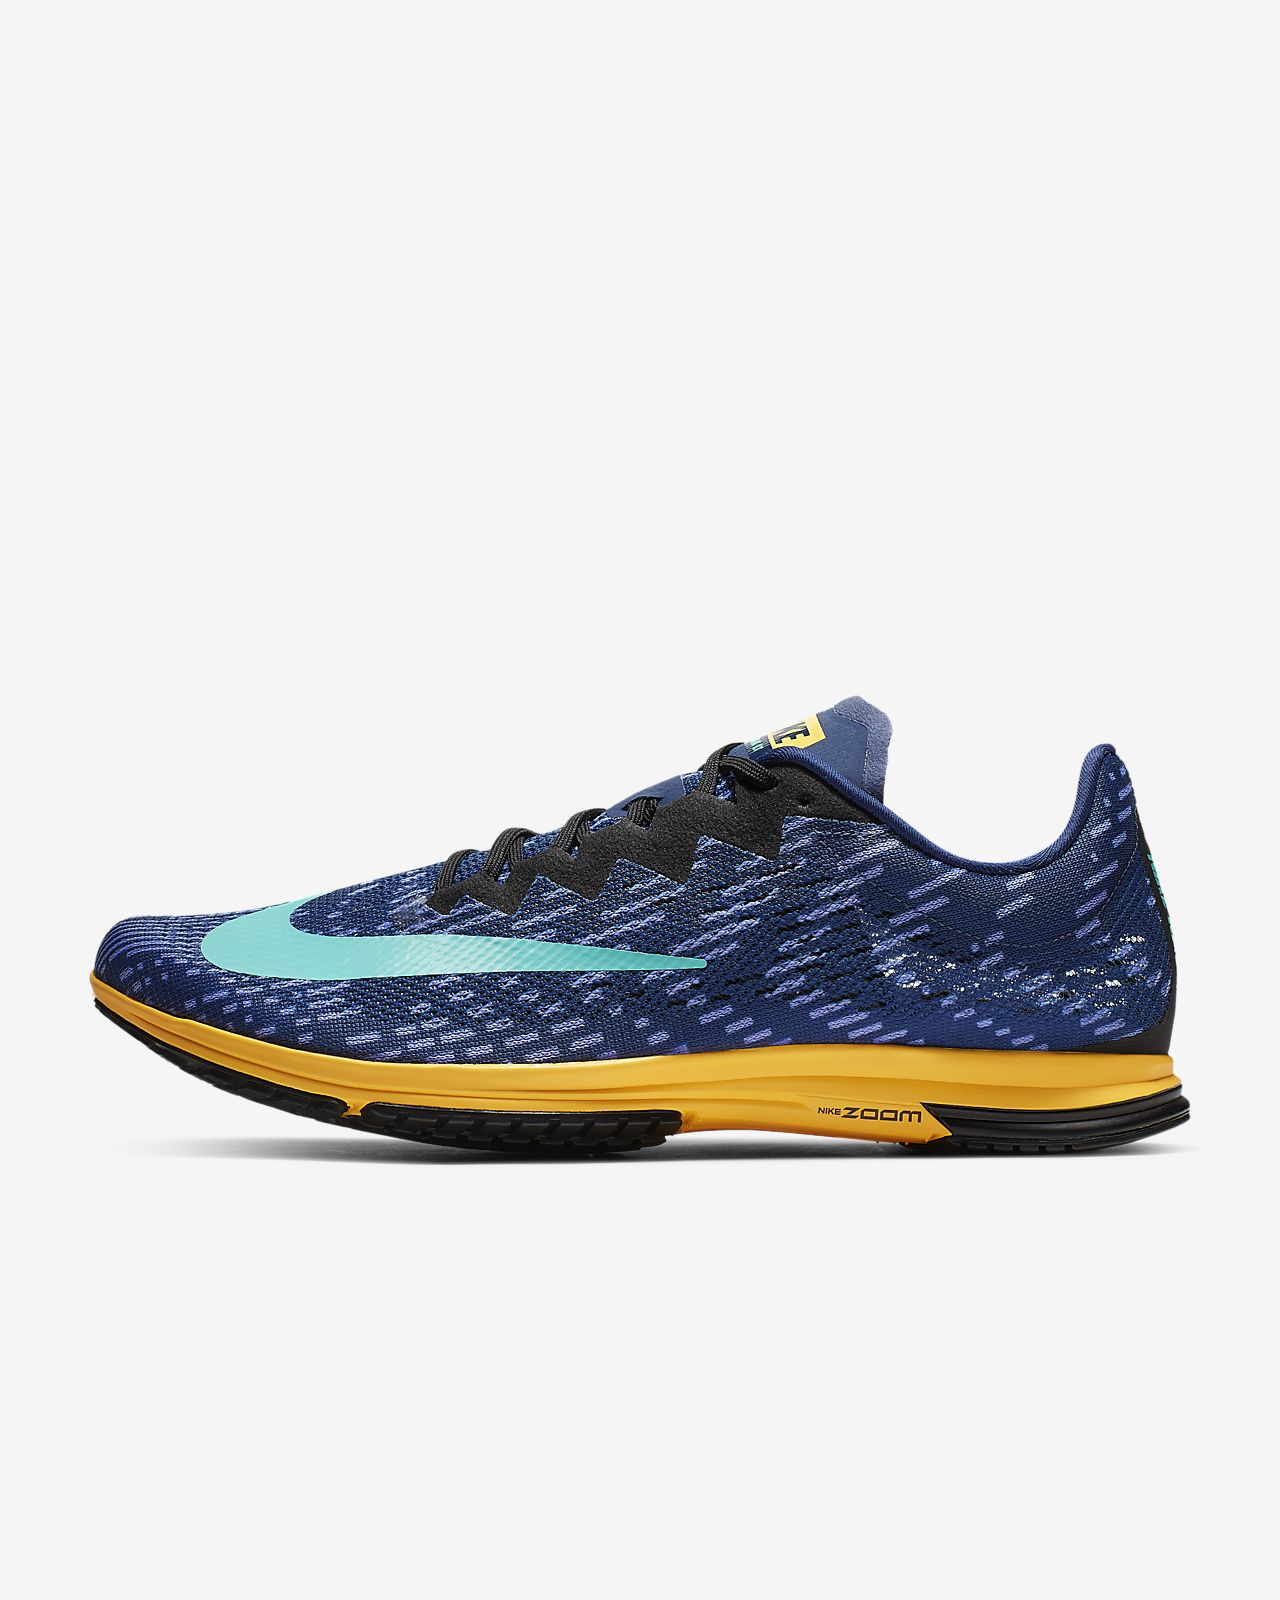 a967c32ca332 Nike Air Zoom Streak LT 4 Racing Shoe. Nike.com